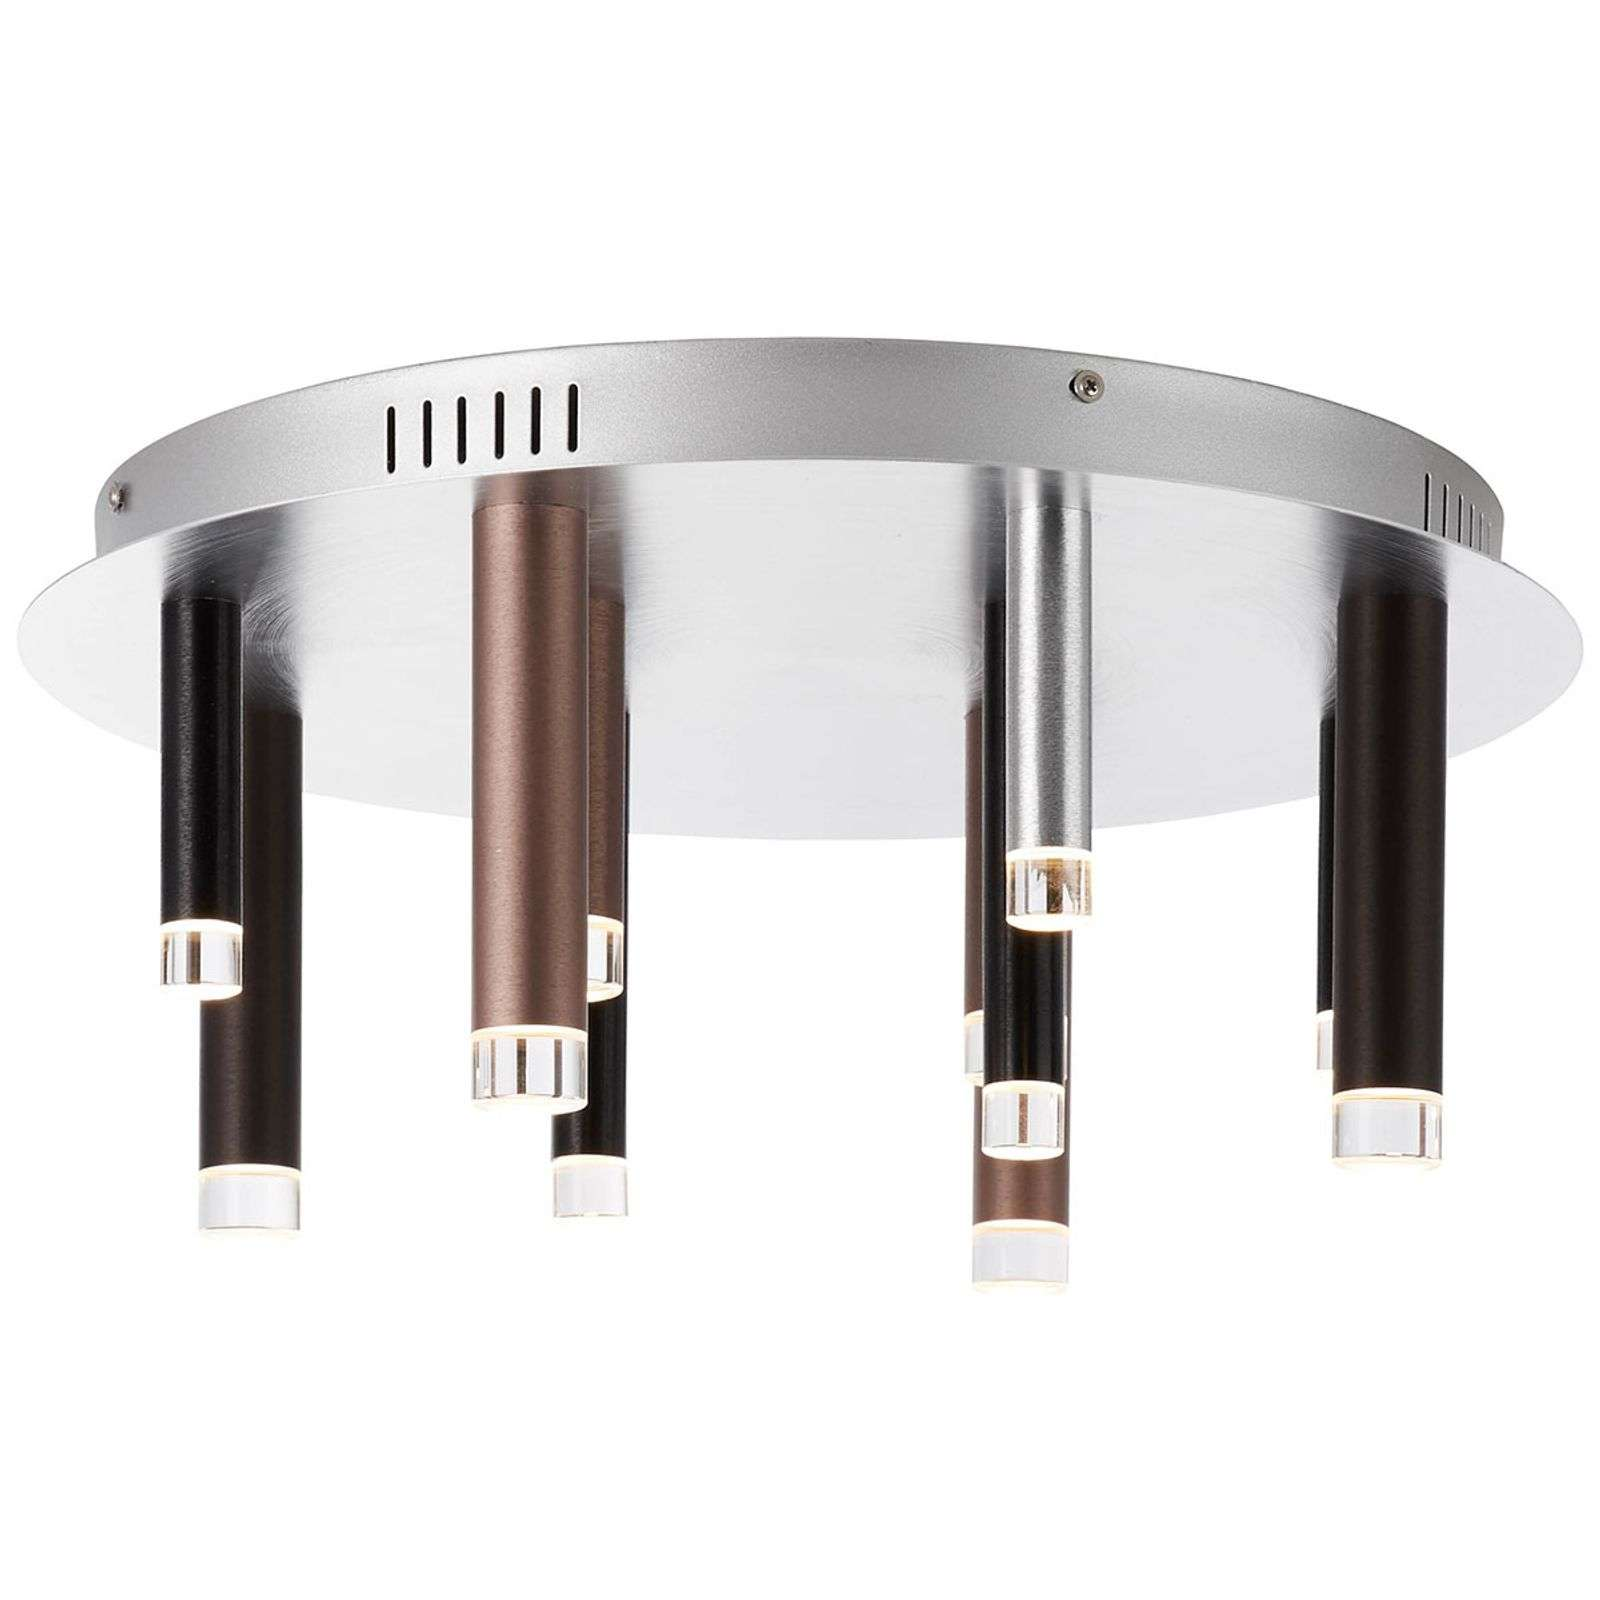 Plafonnier LED Cembalo dimmable 12 lampes